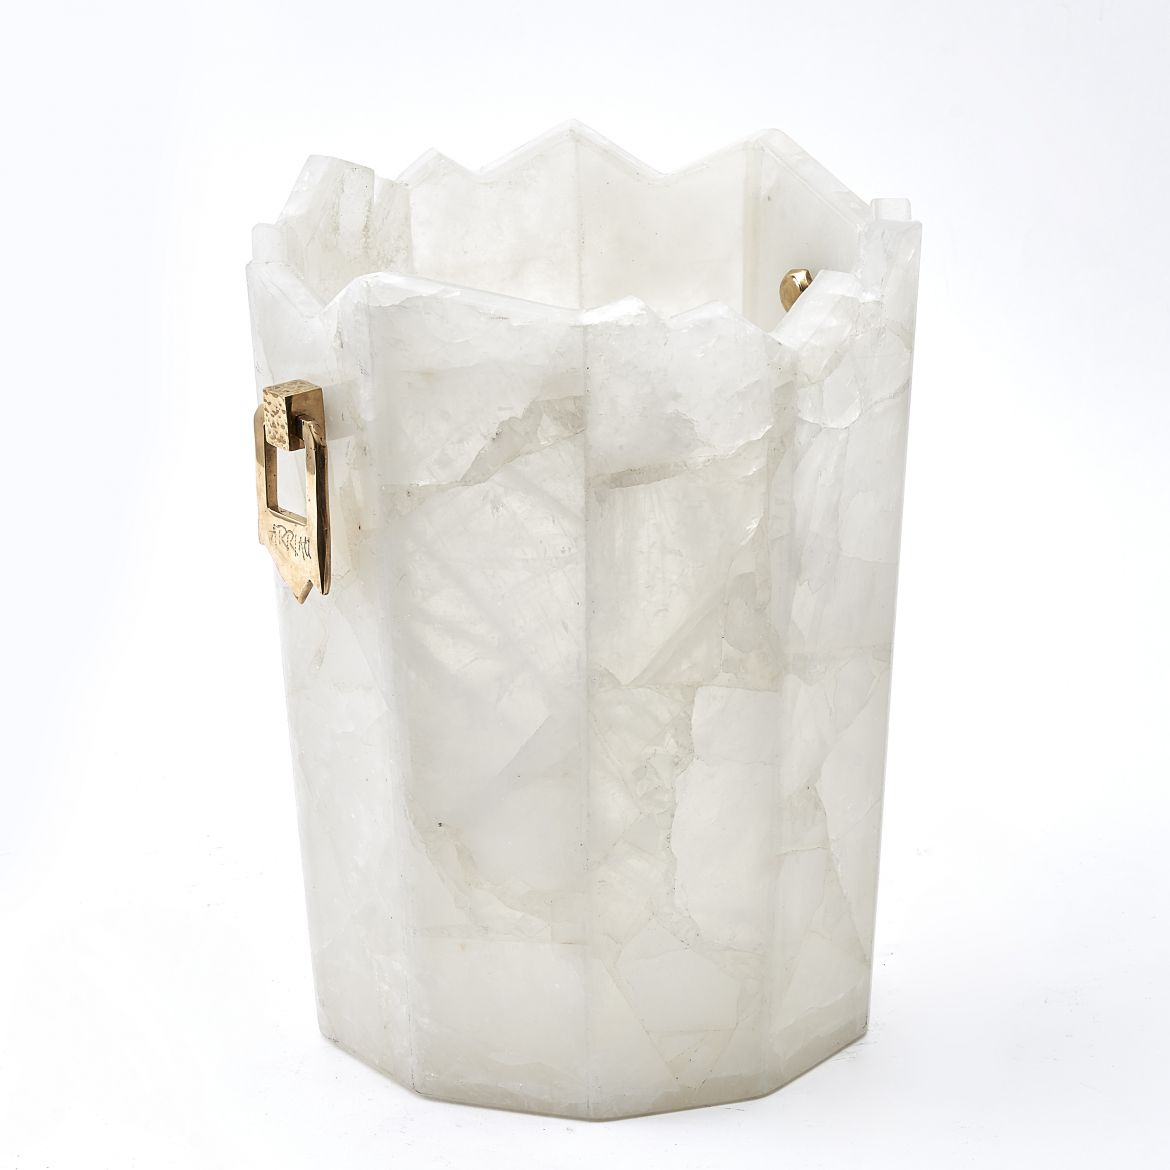 Arriau Rock crystal Champagne Bucket